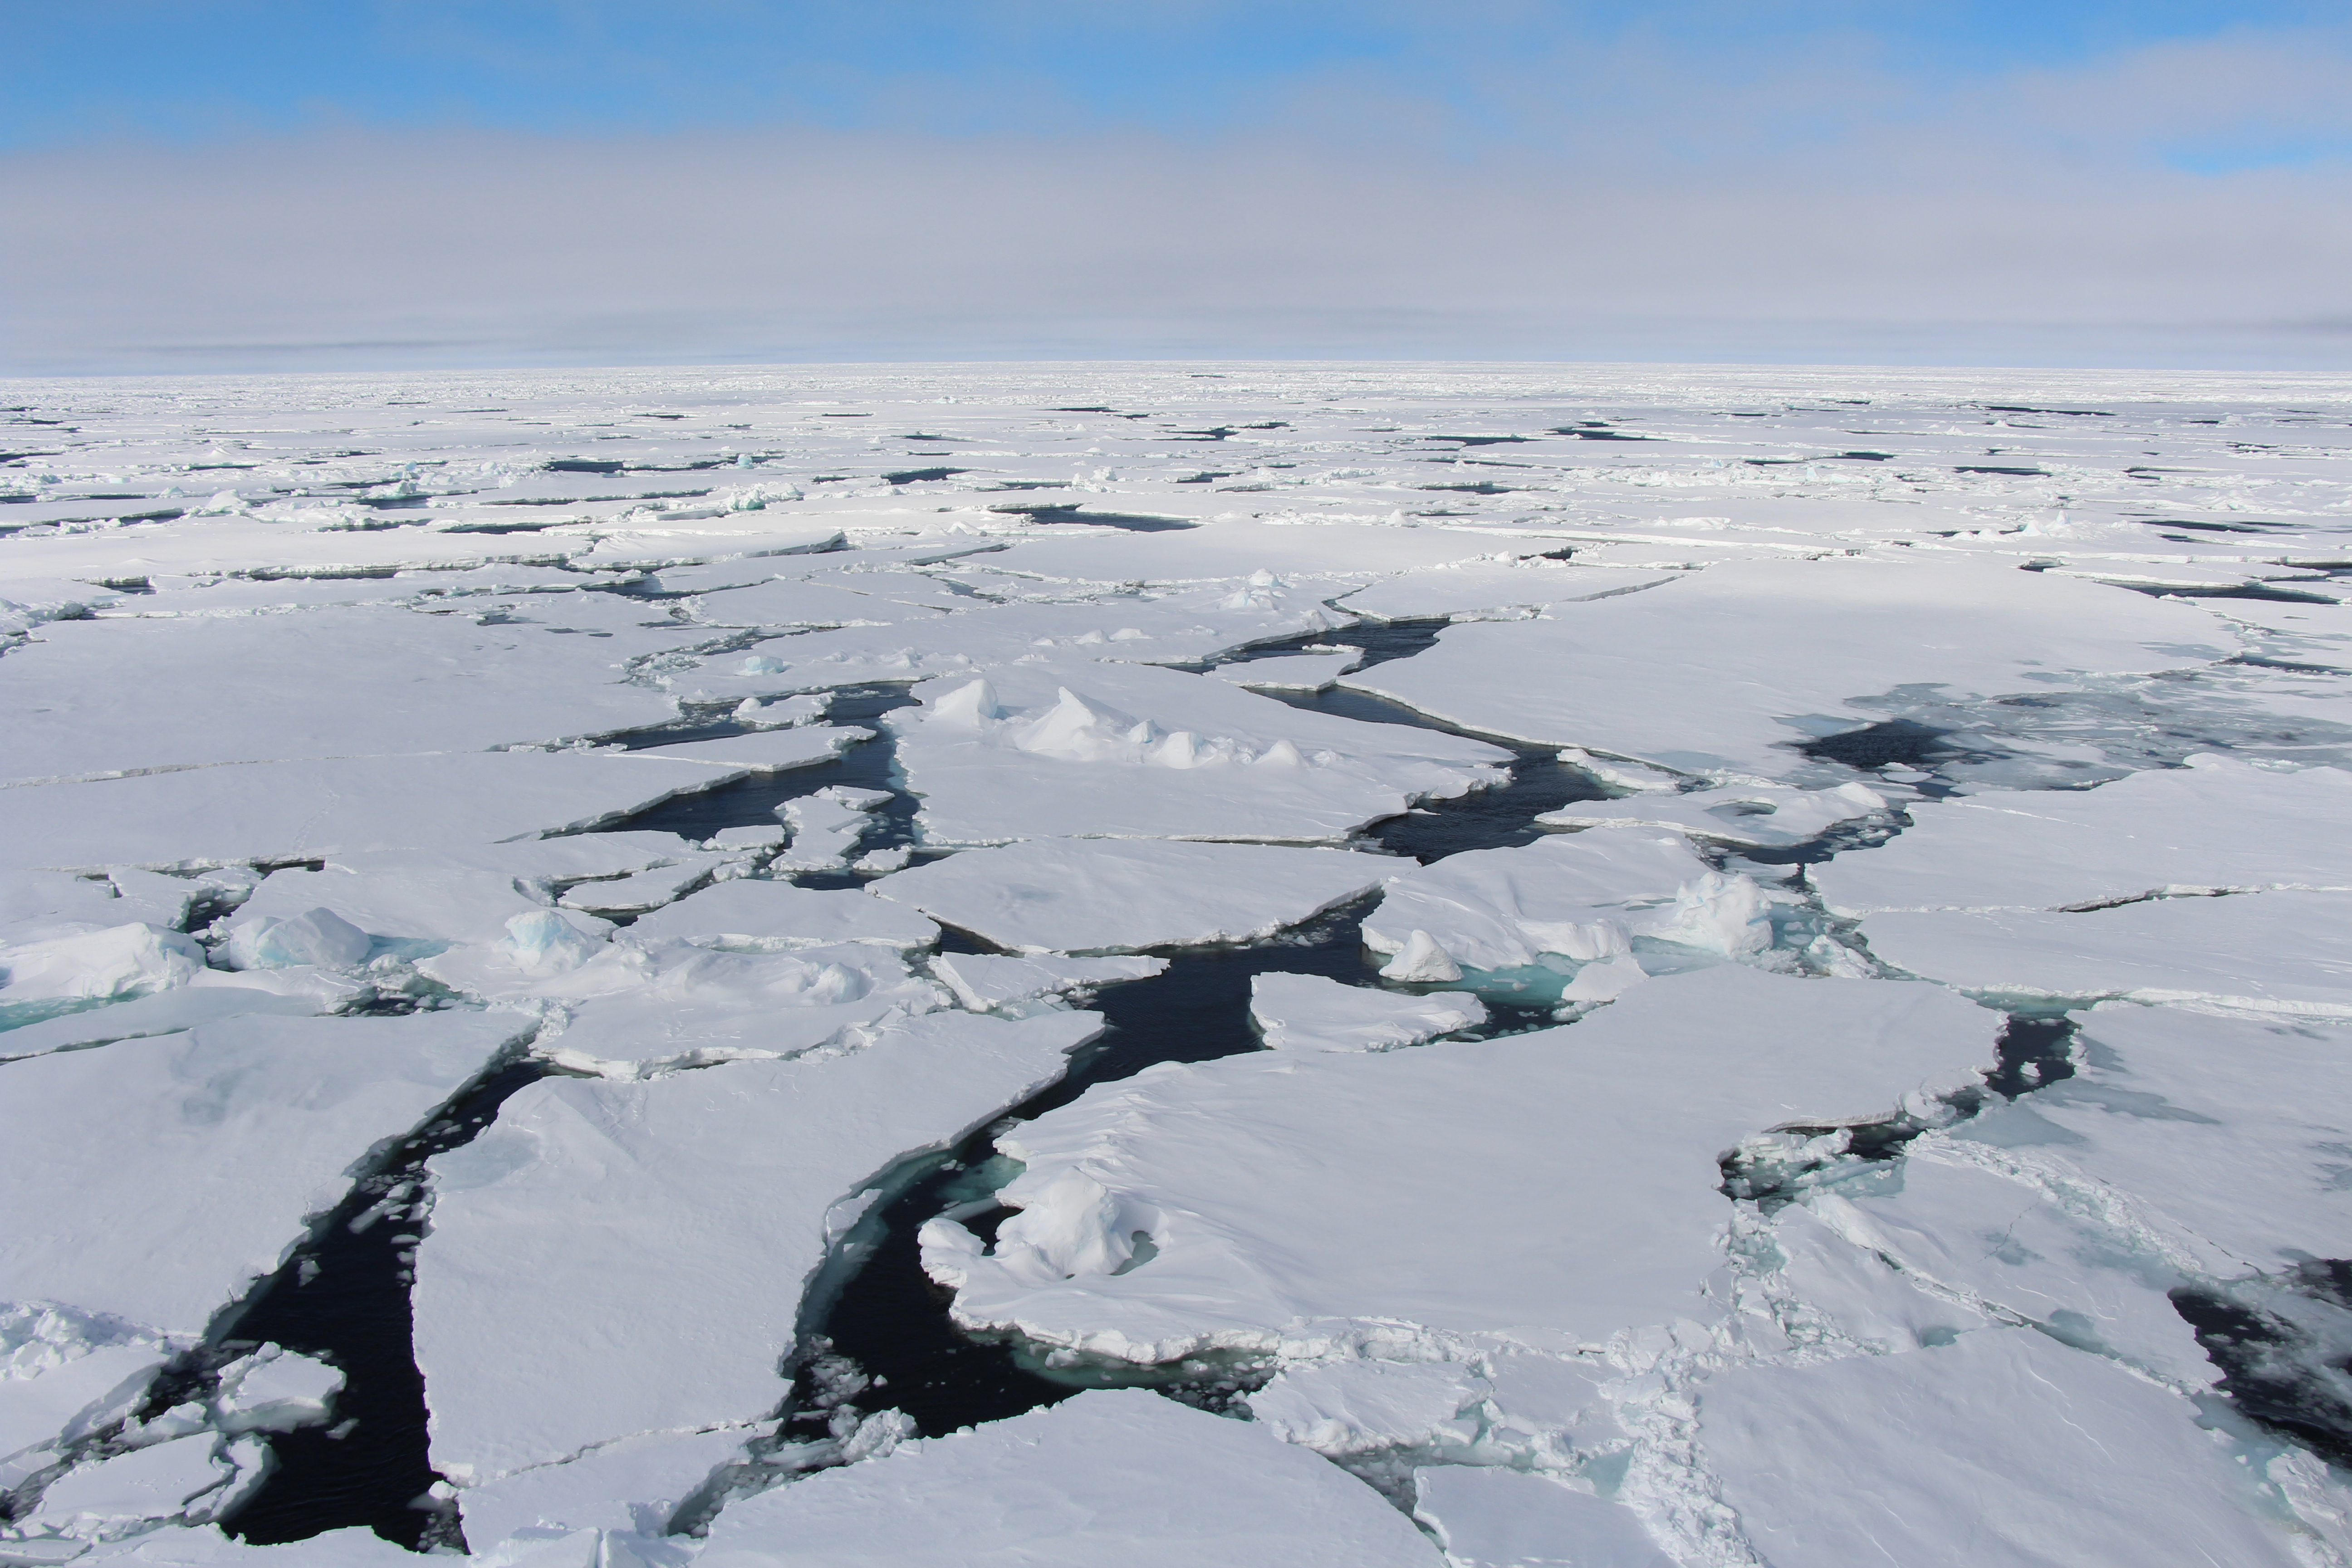 The Arctic sea ice has declined significantly during the last years.